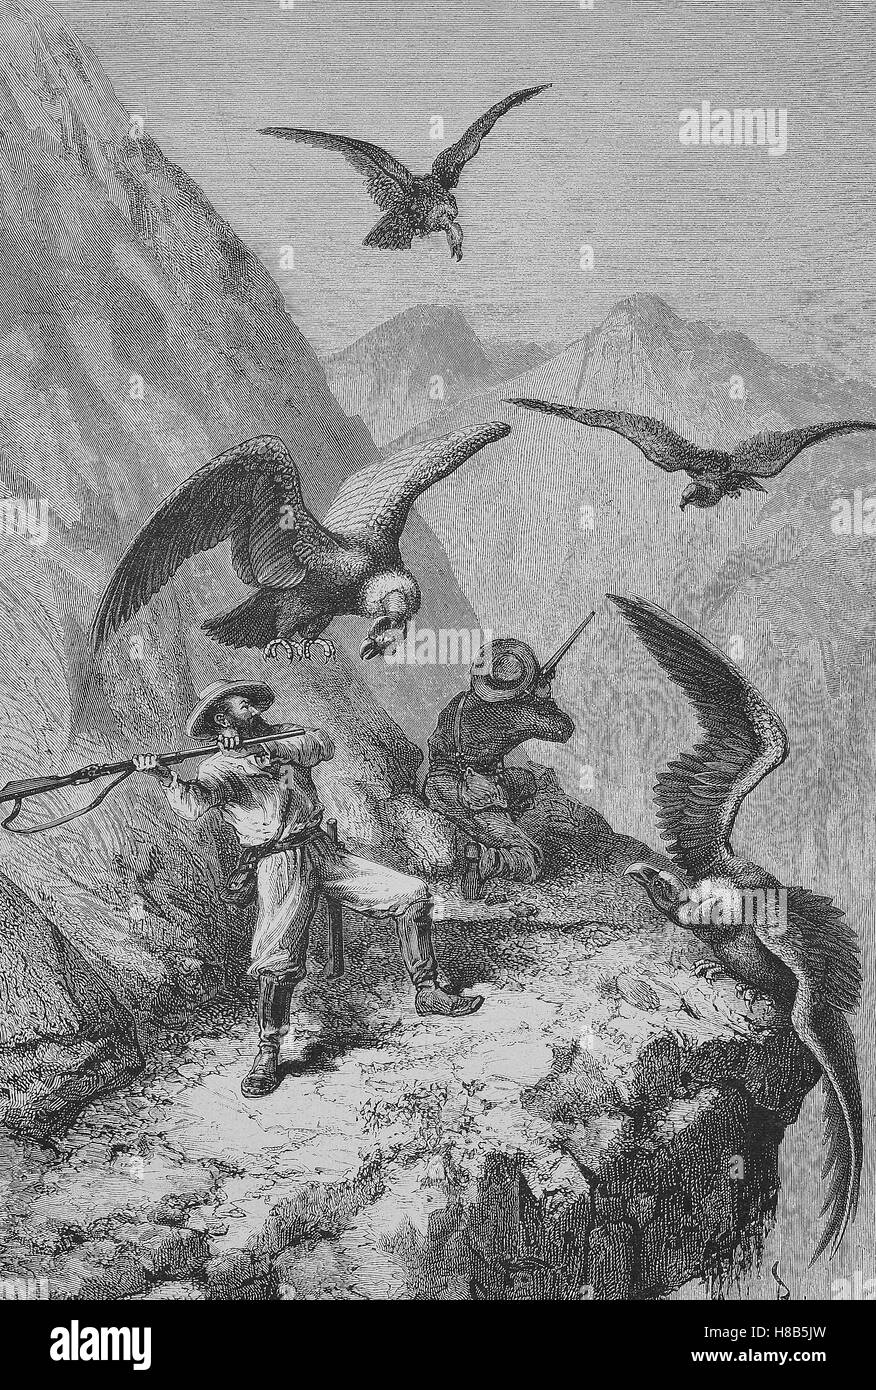 Hunters fighting with condors, Woodcut from 1892 - Stock Image